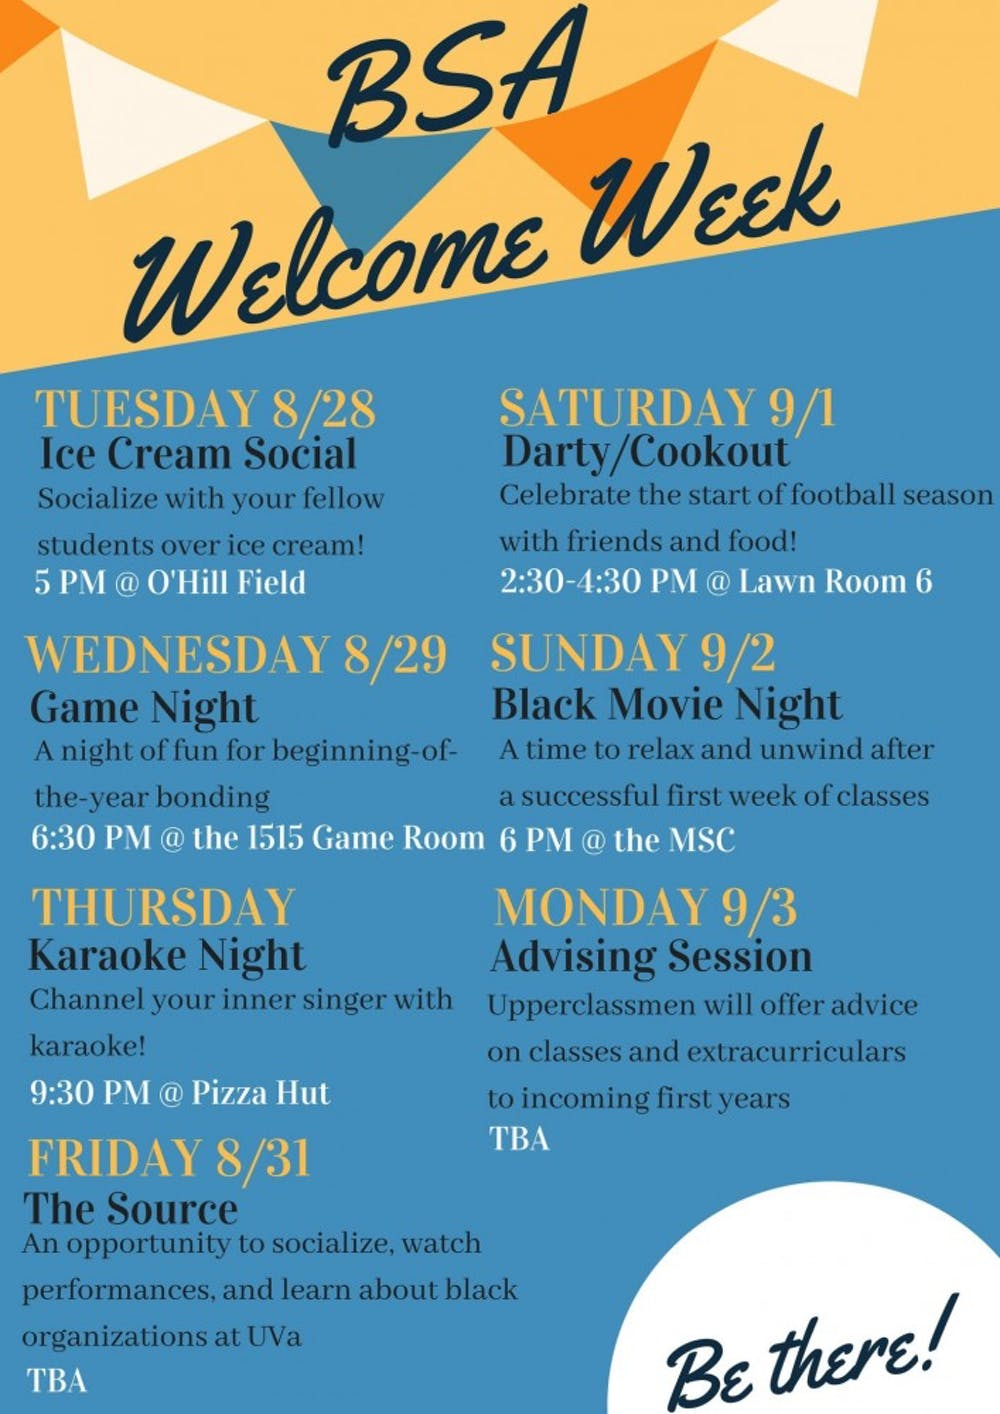 bsa-welcome-week-flyer